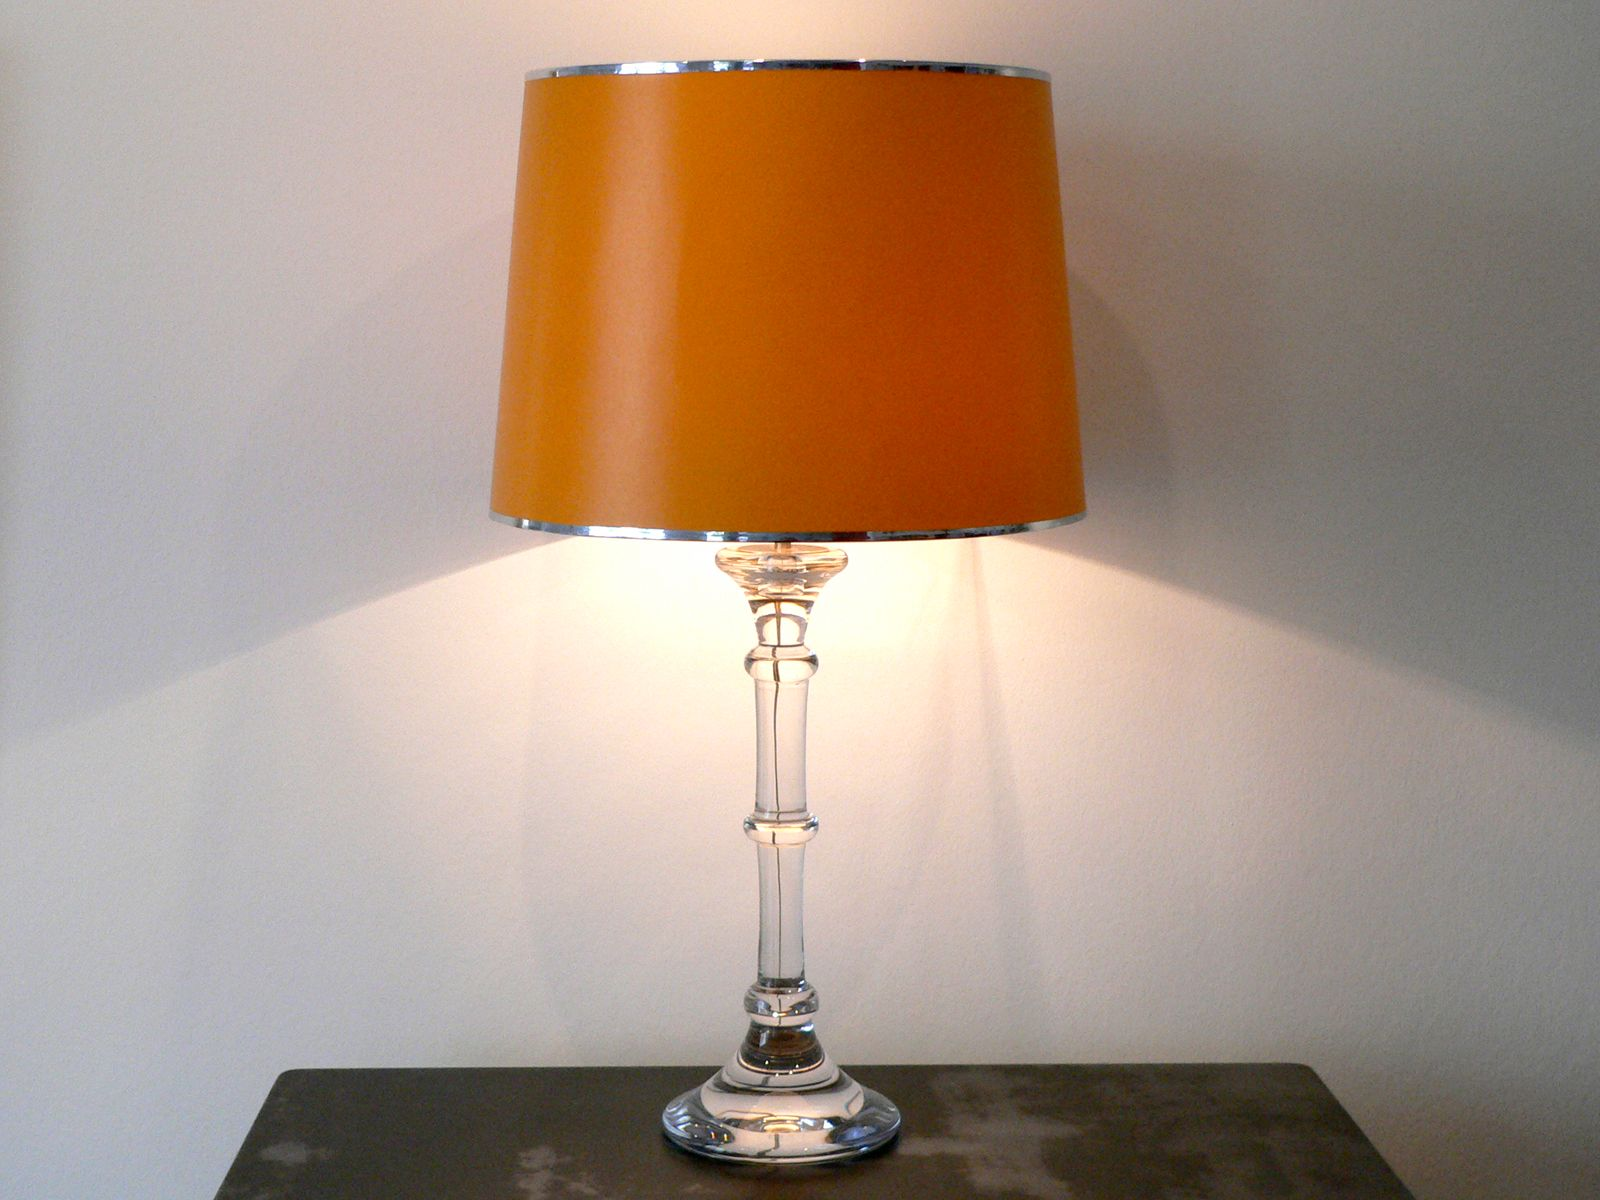 vintage tiffany table lamp from ingo maurer 1967 for sale at pamono. Black Bedroom Furniture Sets. Home Design Ideas